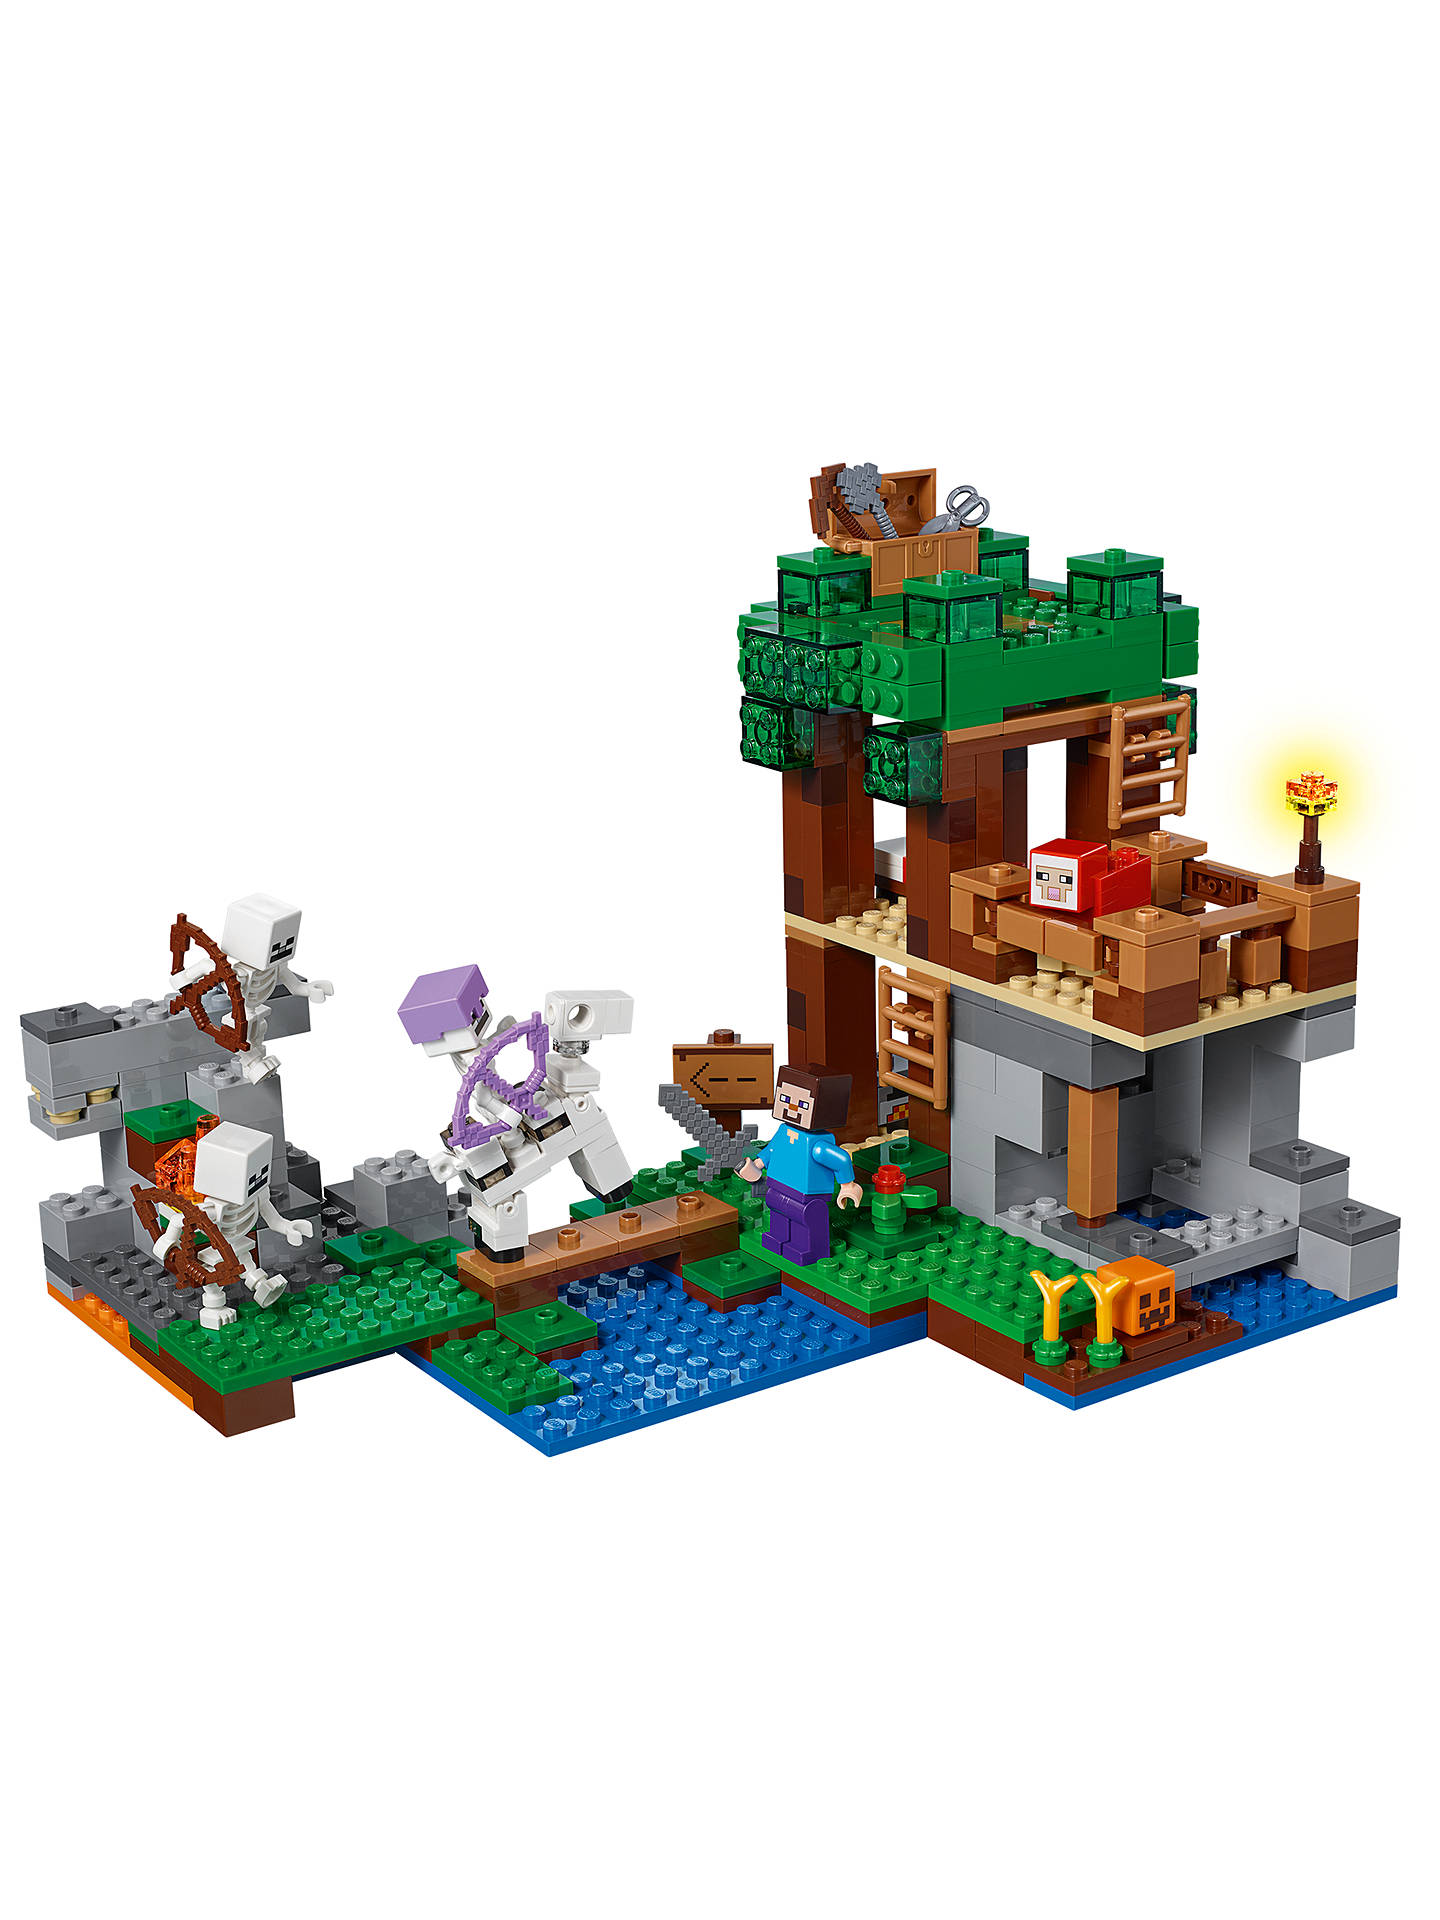 LEGO Minecraft 21146 The Skeleton Attack at John Lewis & Partners